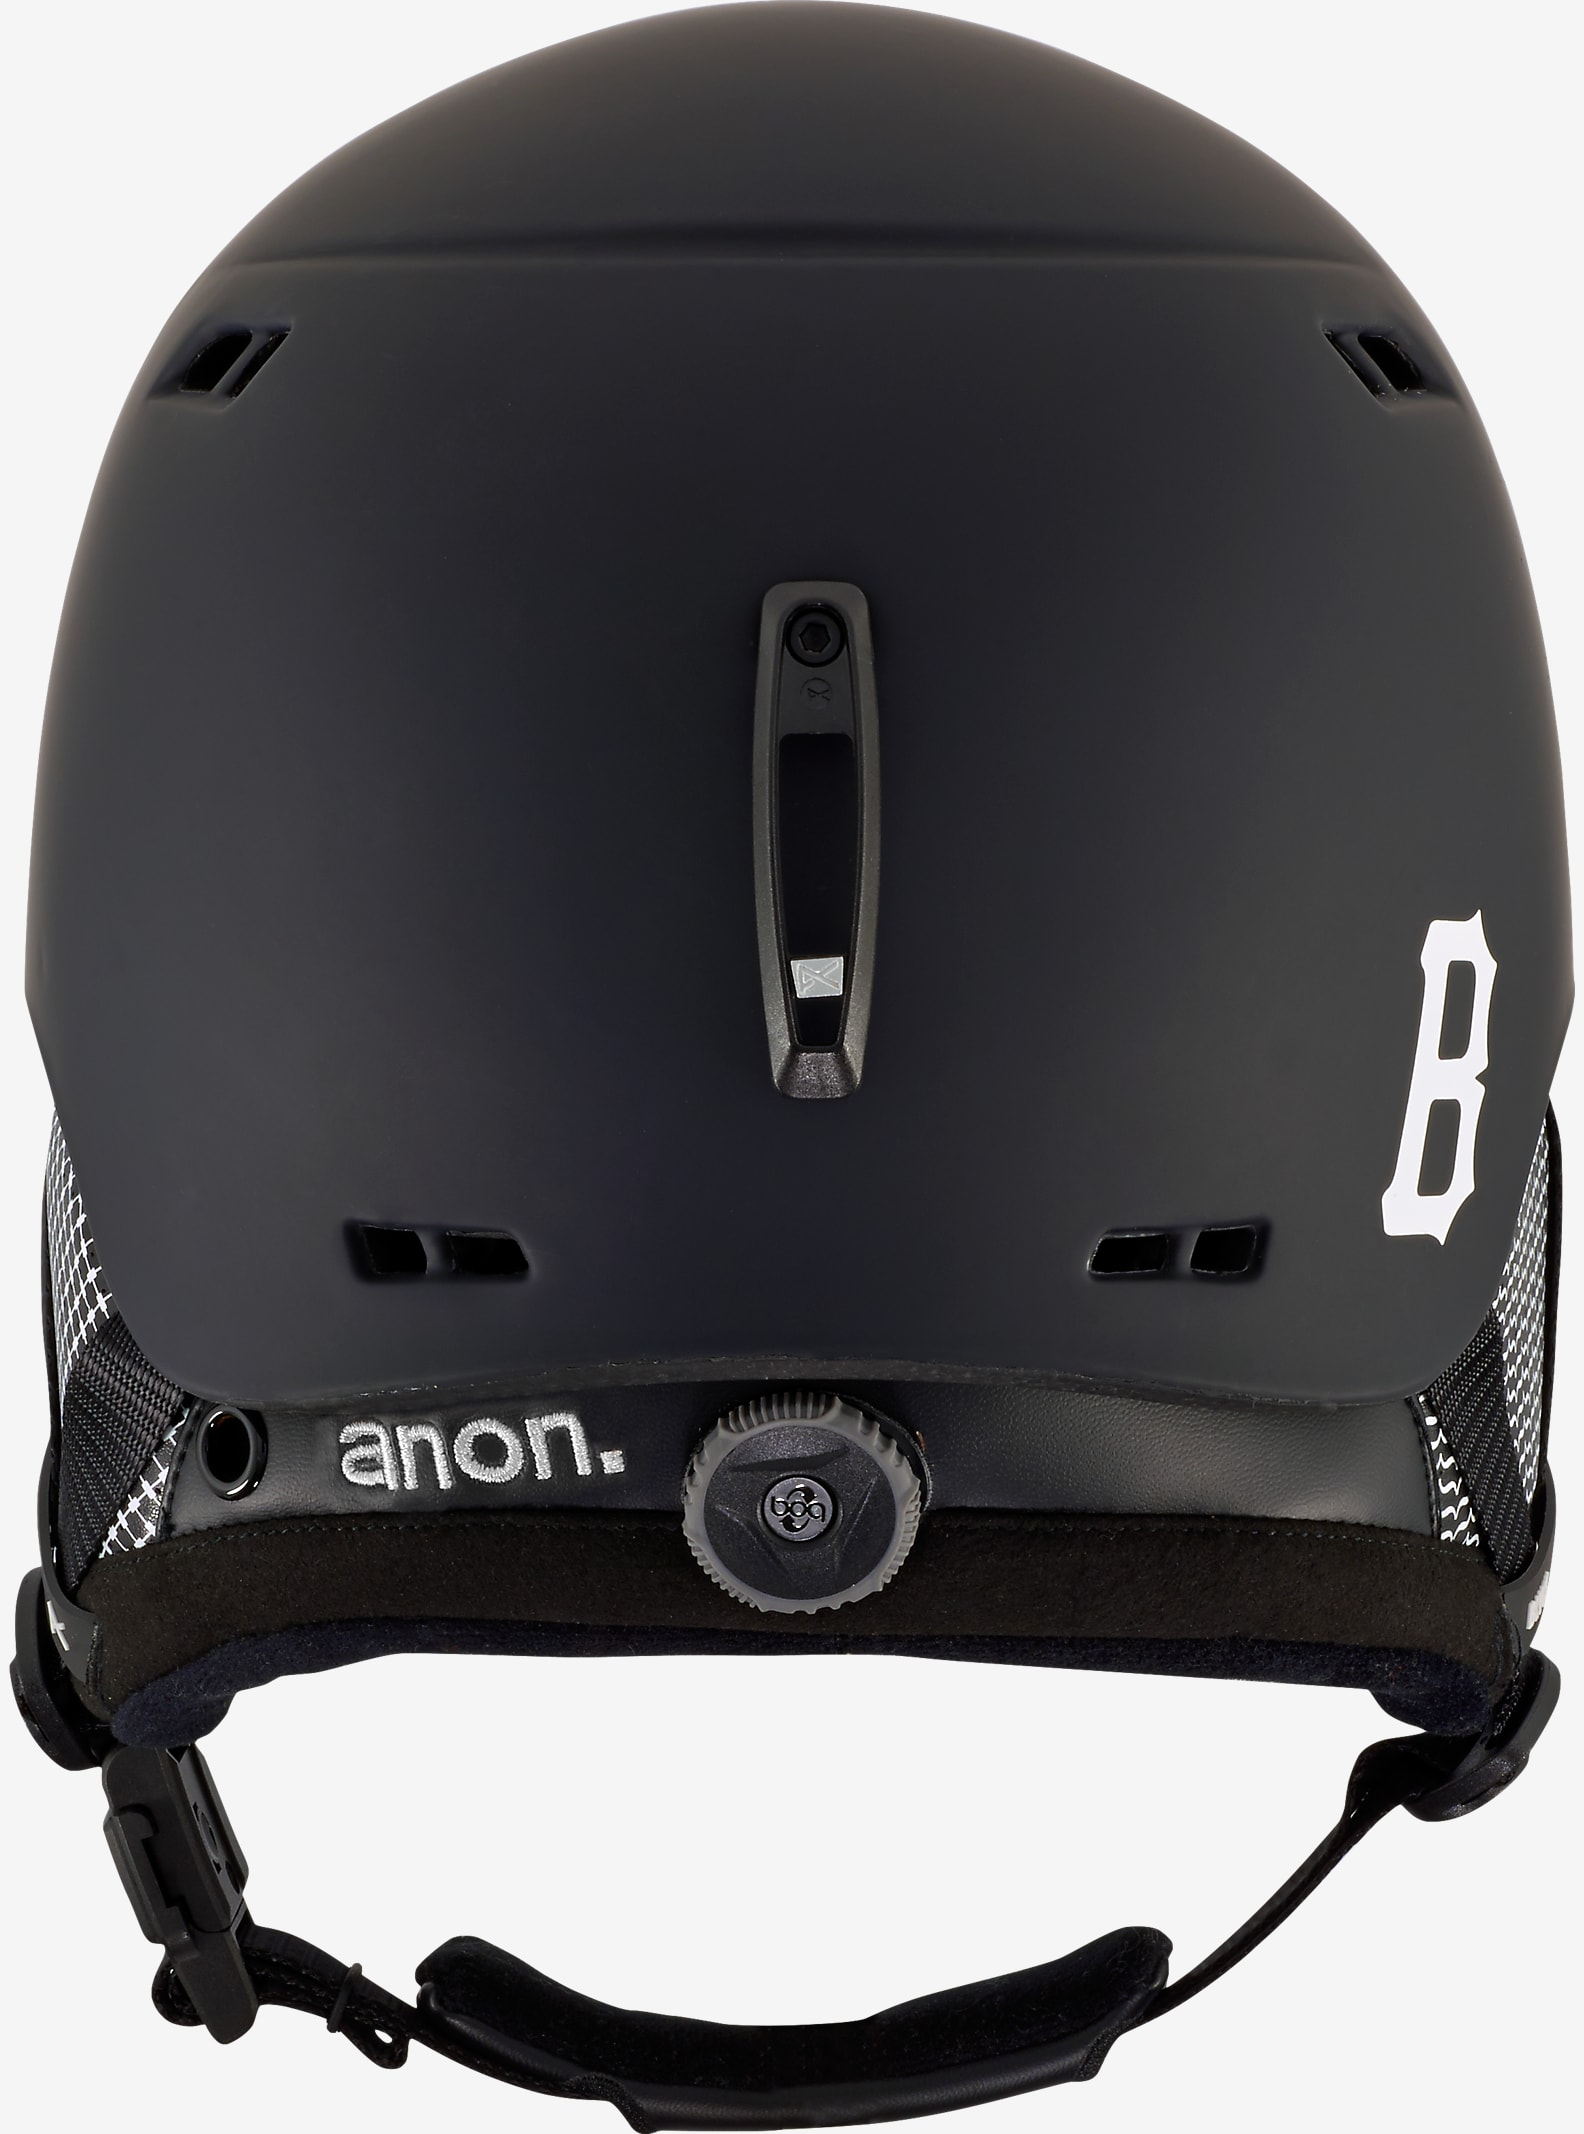 Black Scale x anon. Rodan Helmet shown in Black Scale